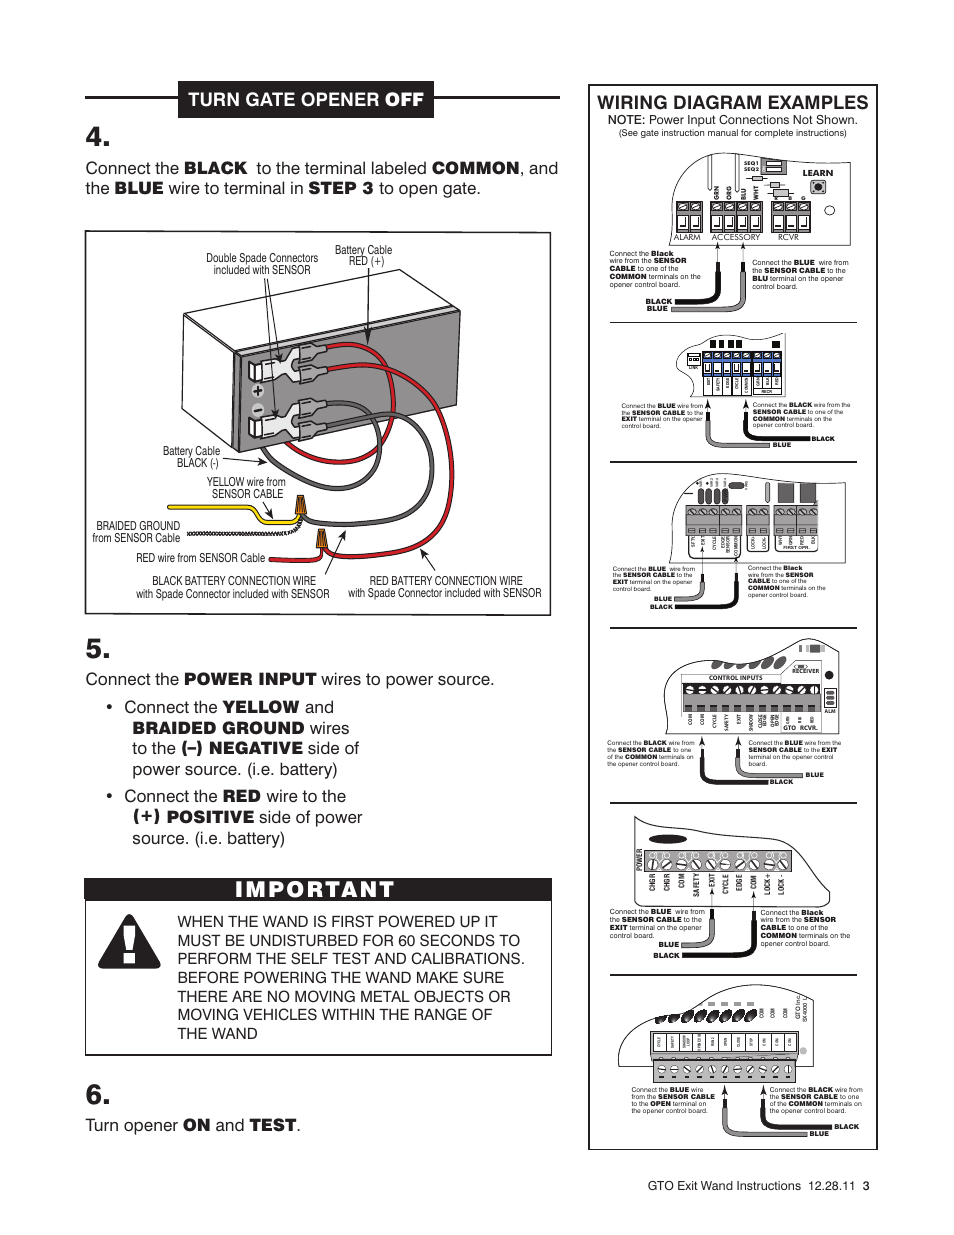 hight resolution of important turn gate opener off wiring diagram examples mighty generic wiring diagram important